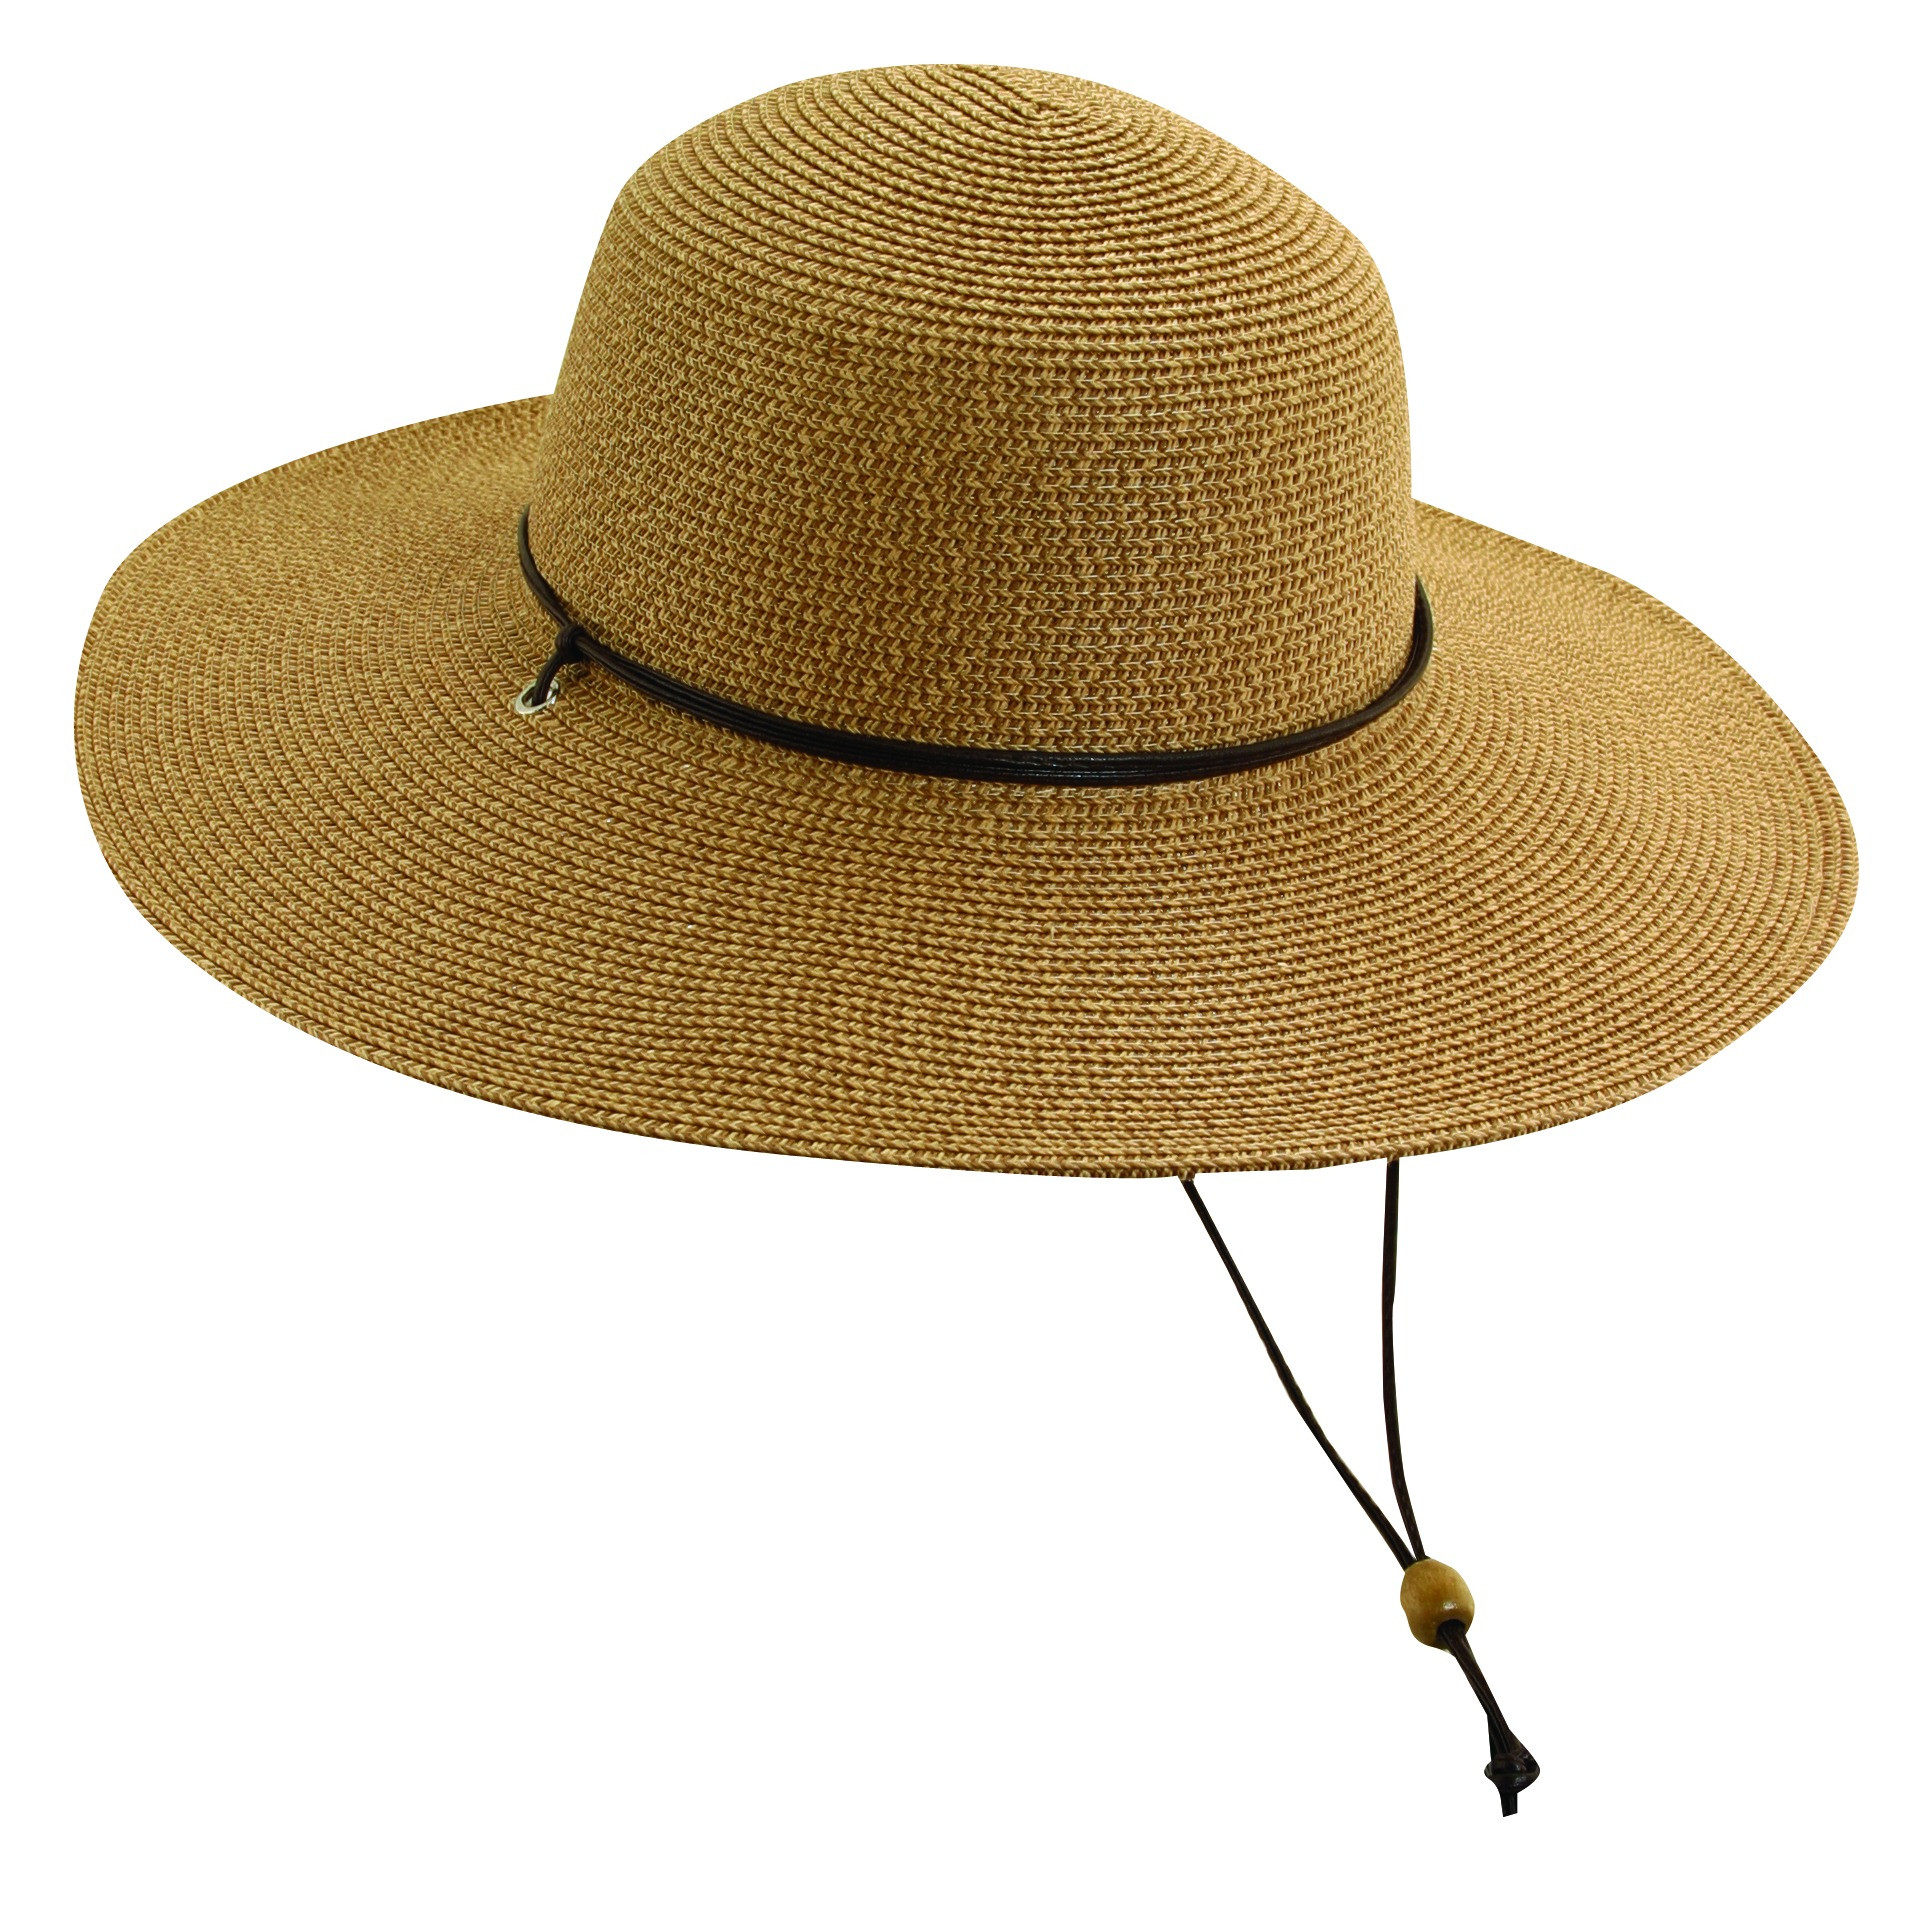 Paper Braid Sun Hat with Chin Cord Coffee 937206a3ad1